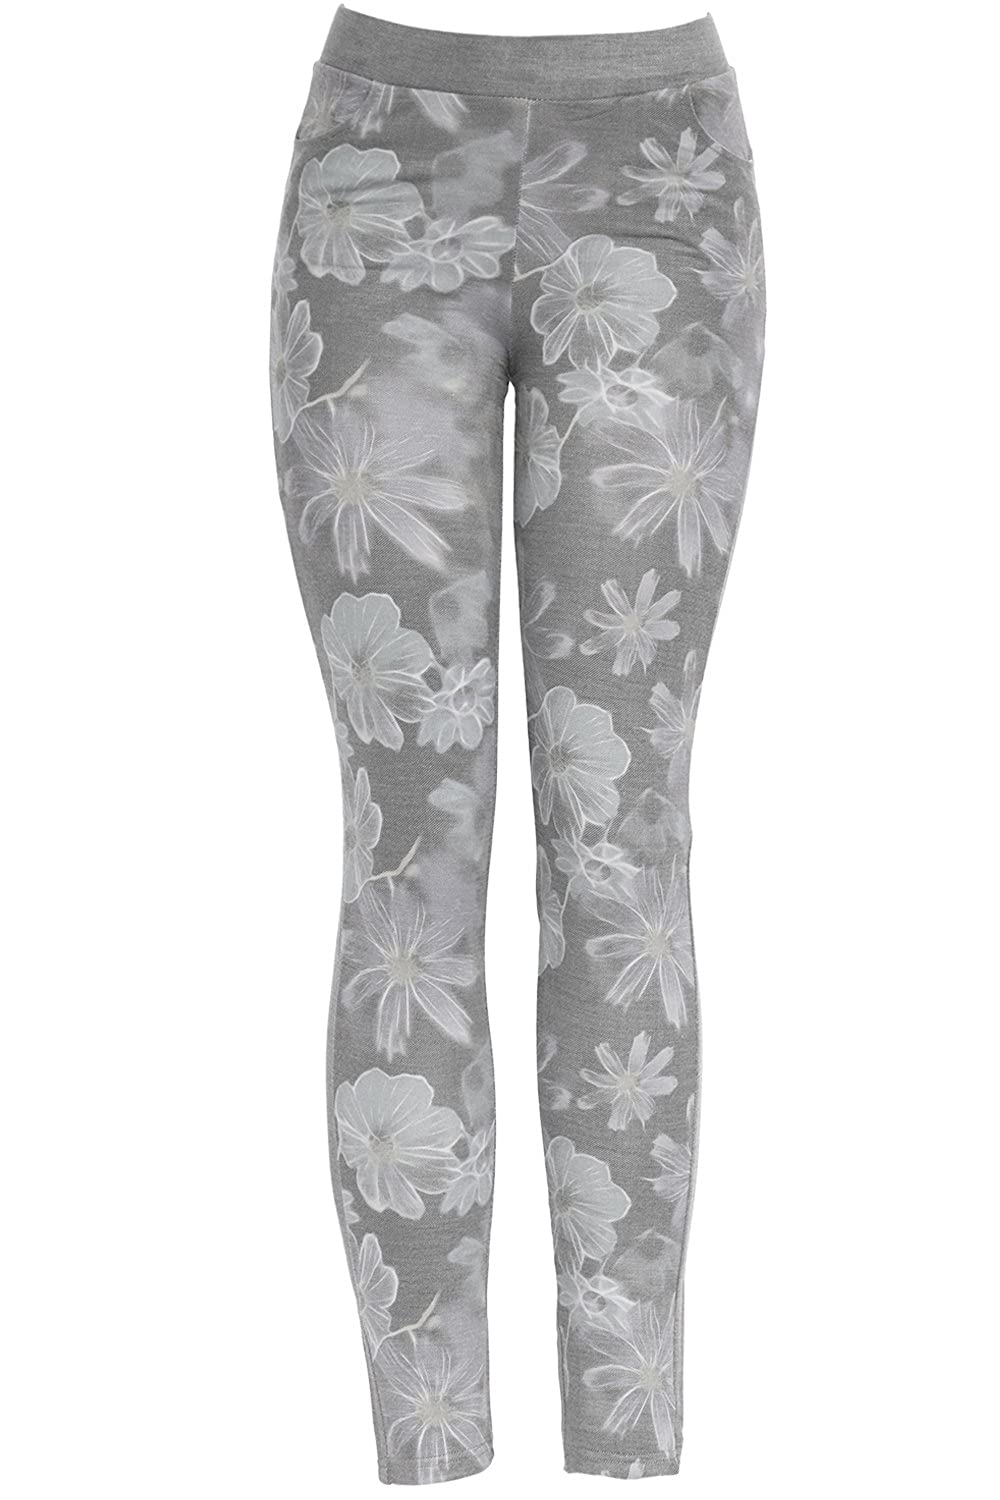 KMystic Women's Pull On Stretch Jeggings Pants